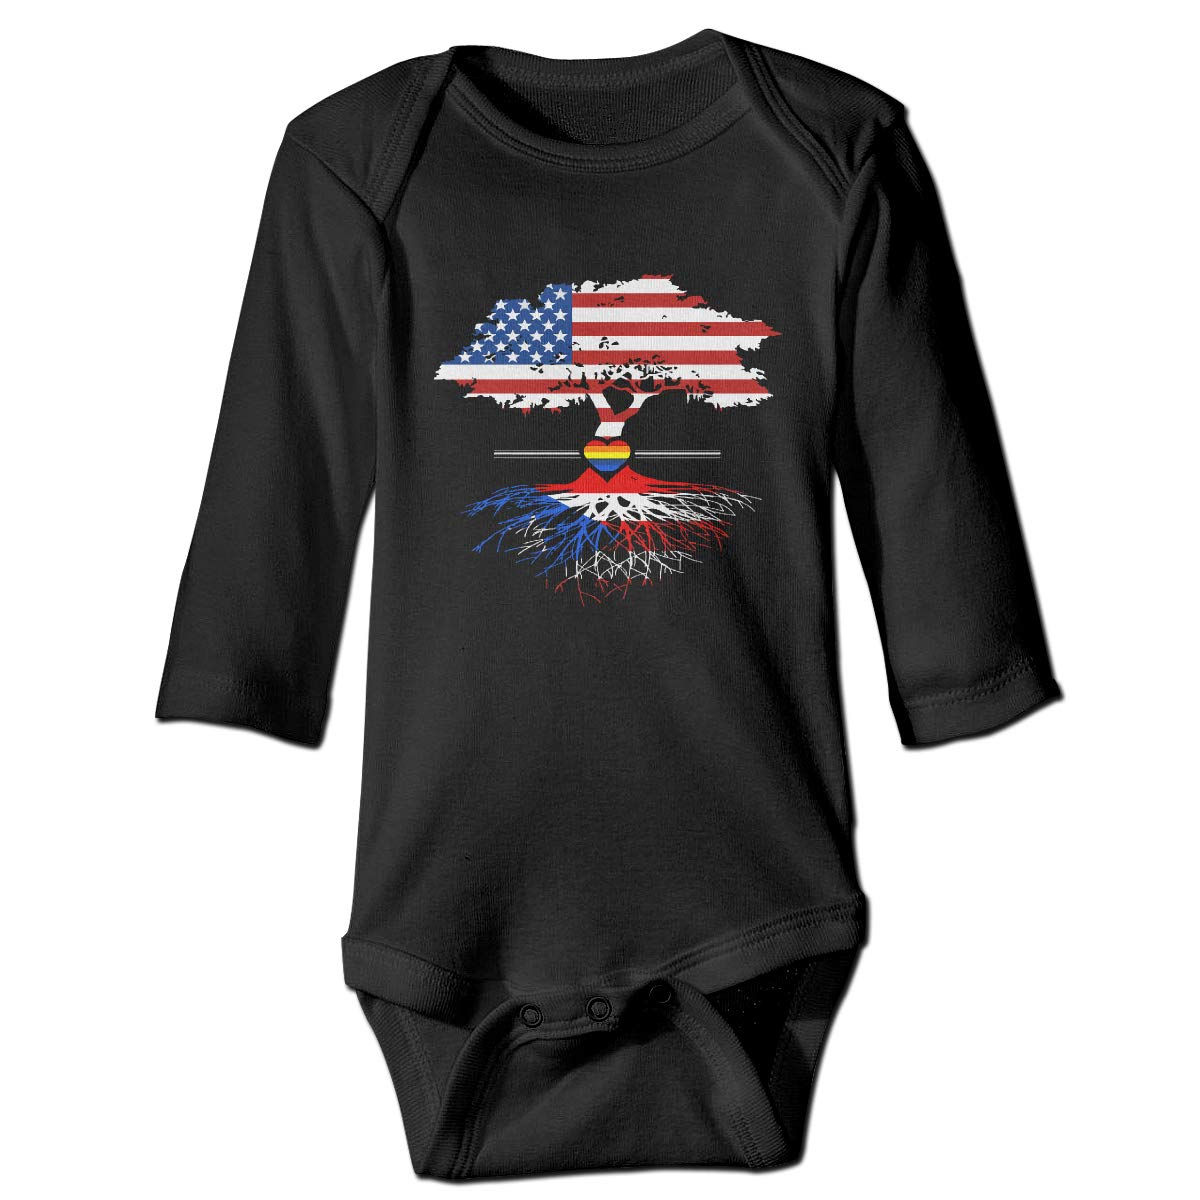 CZDedgQ99 Baby Boys American Grown Puerto Rican Gay Long Sleeve Climbing Clothes Playsuit Suit 6-24 Months